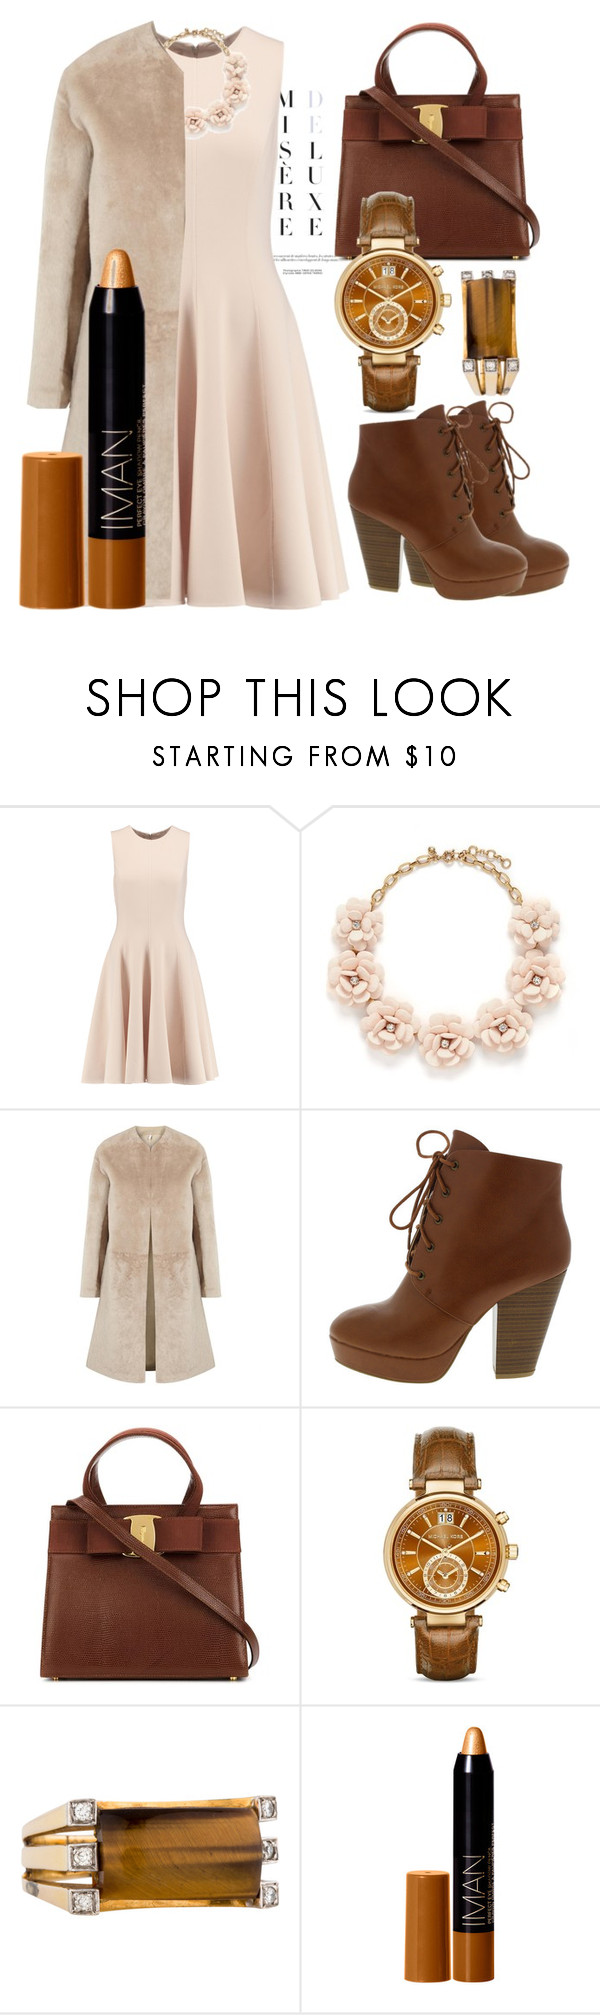 """""""Untitled #241"""" by ghadamfh ❤ liked on Polyvore featuring Michael Kors, J.Crew, Helmut Lang, women's clothing, women's fashion, women, female, woman, misses and juniors"""